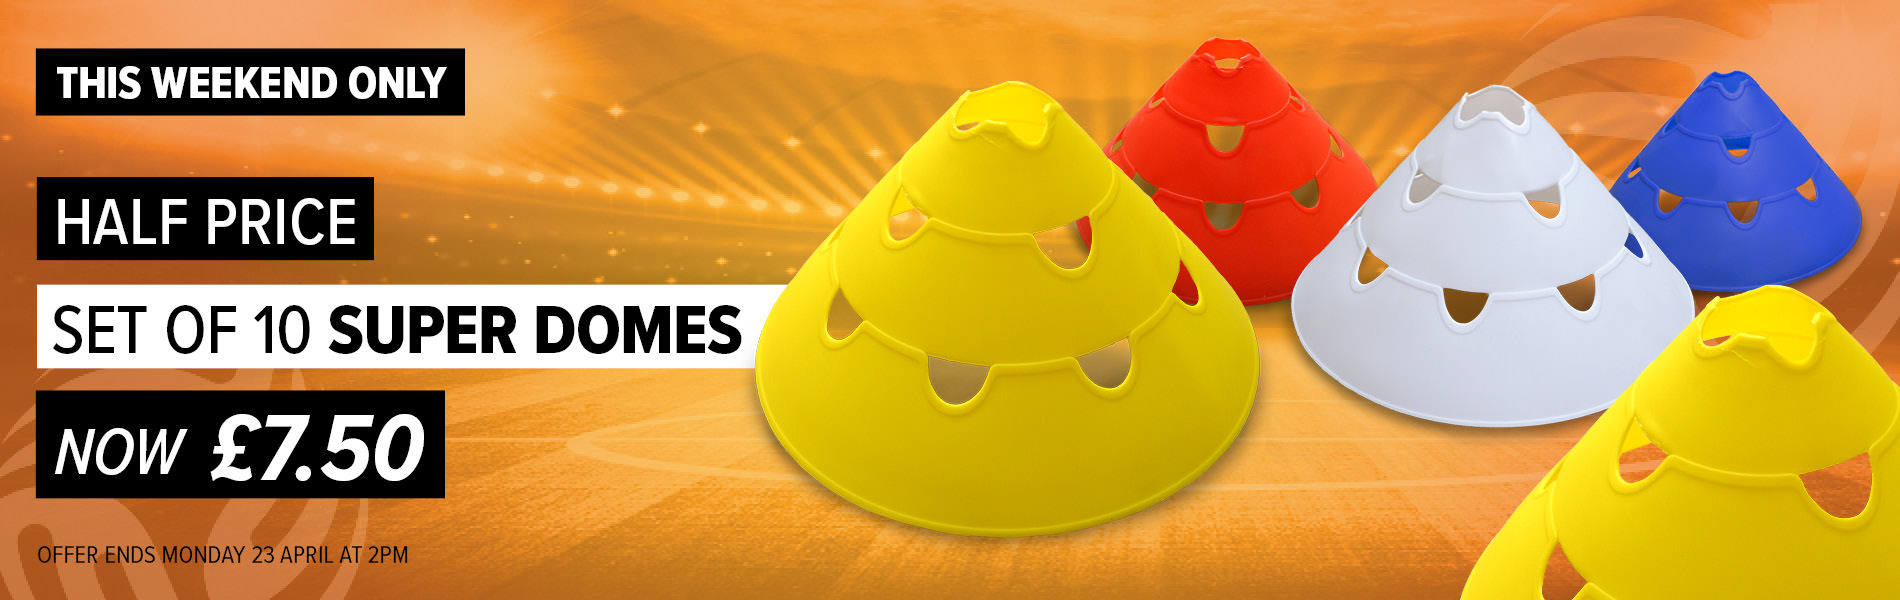 Weekend Deal - Direct Soccer Super Domes HALF PRICE